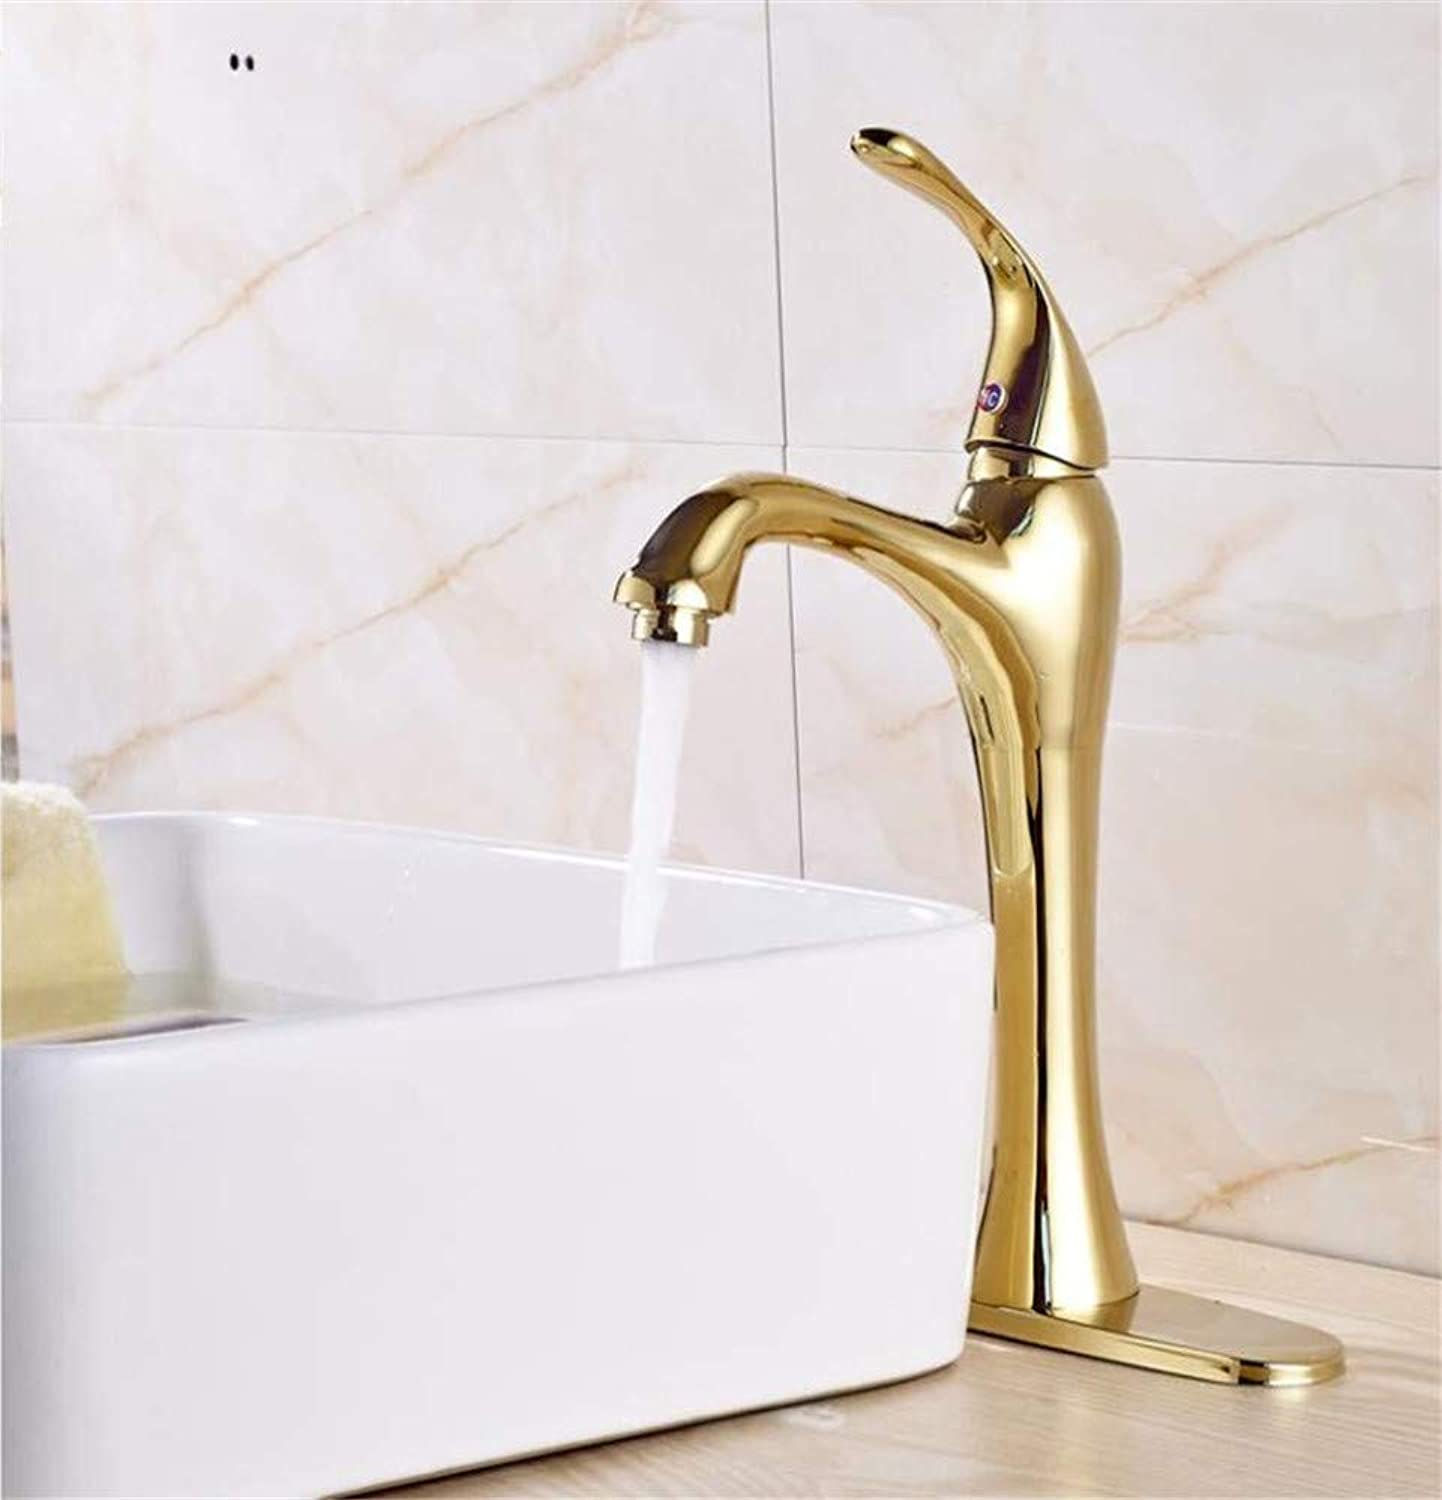 360° redating Faucet Retro Faucetbathroom Sink Faucet Deck Mounted Single Handle Mixer Tap with 10  Cover Plate